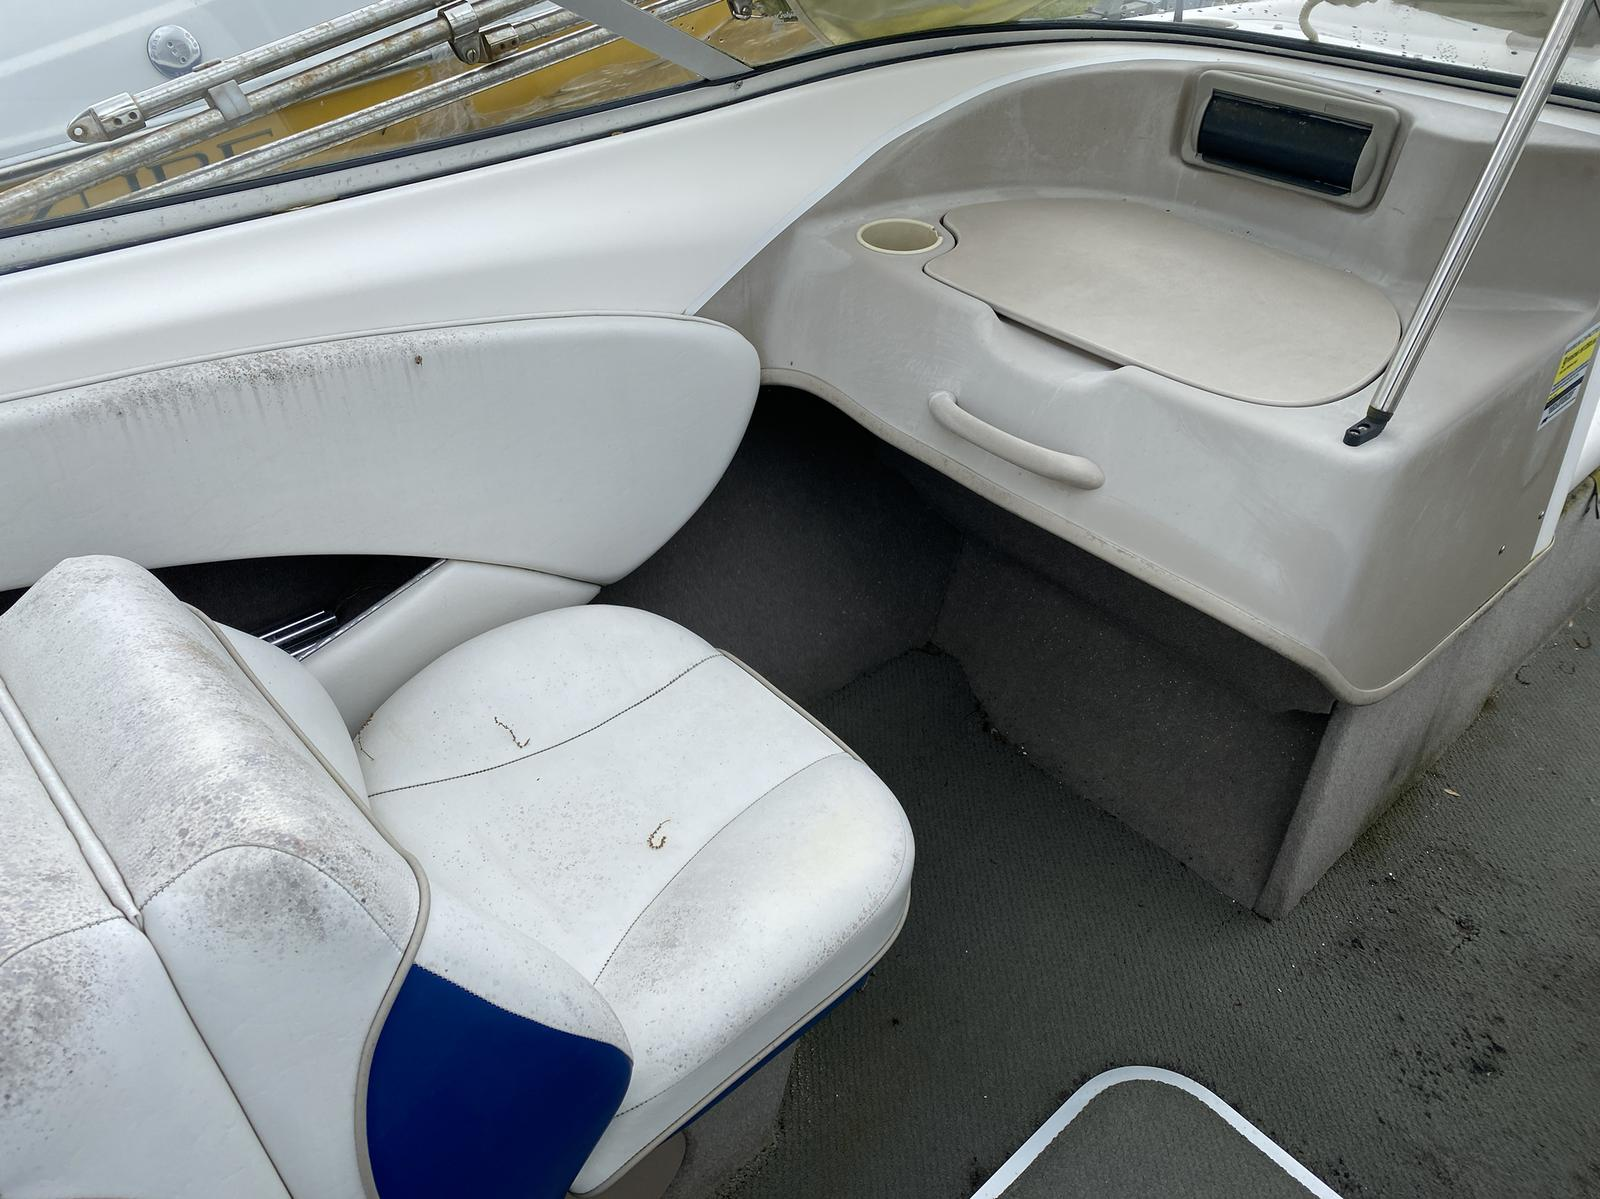 2004 Bayliner boat for sale, model of the boat is 215BR Classic21 & Image # 4 of 9